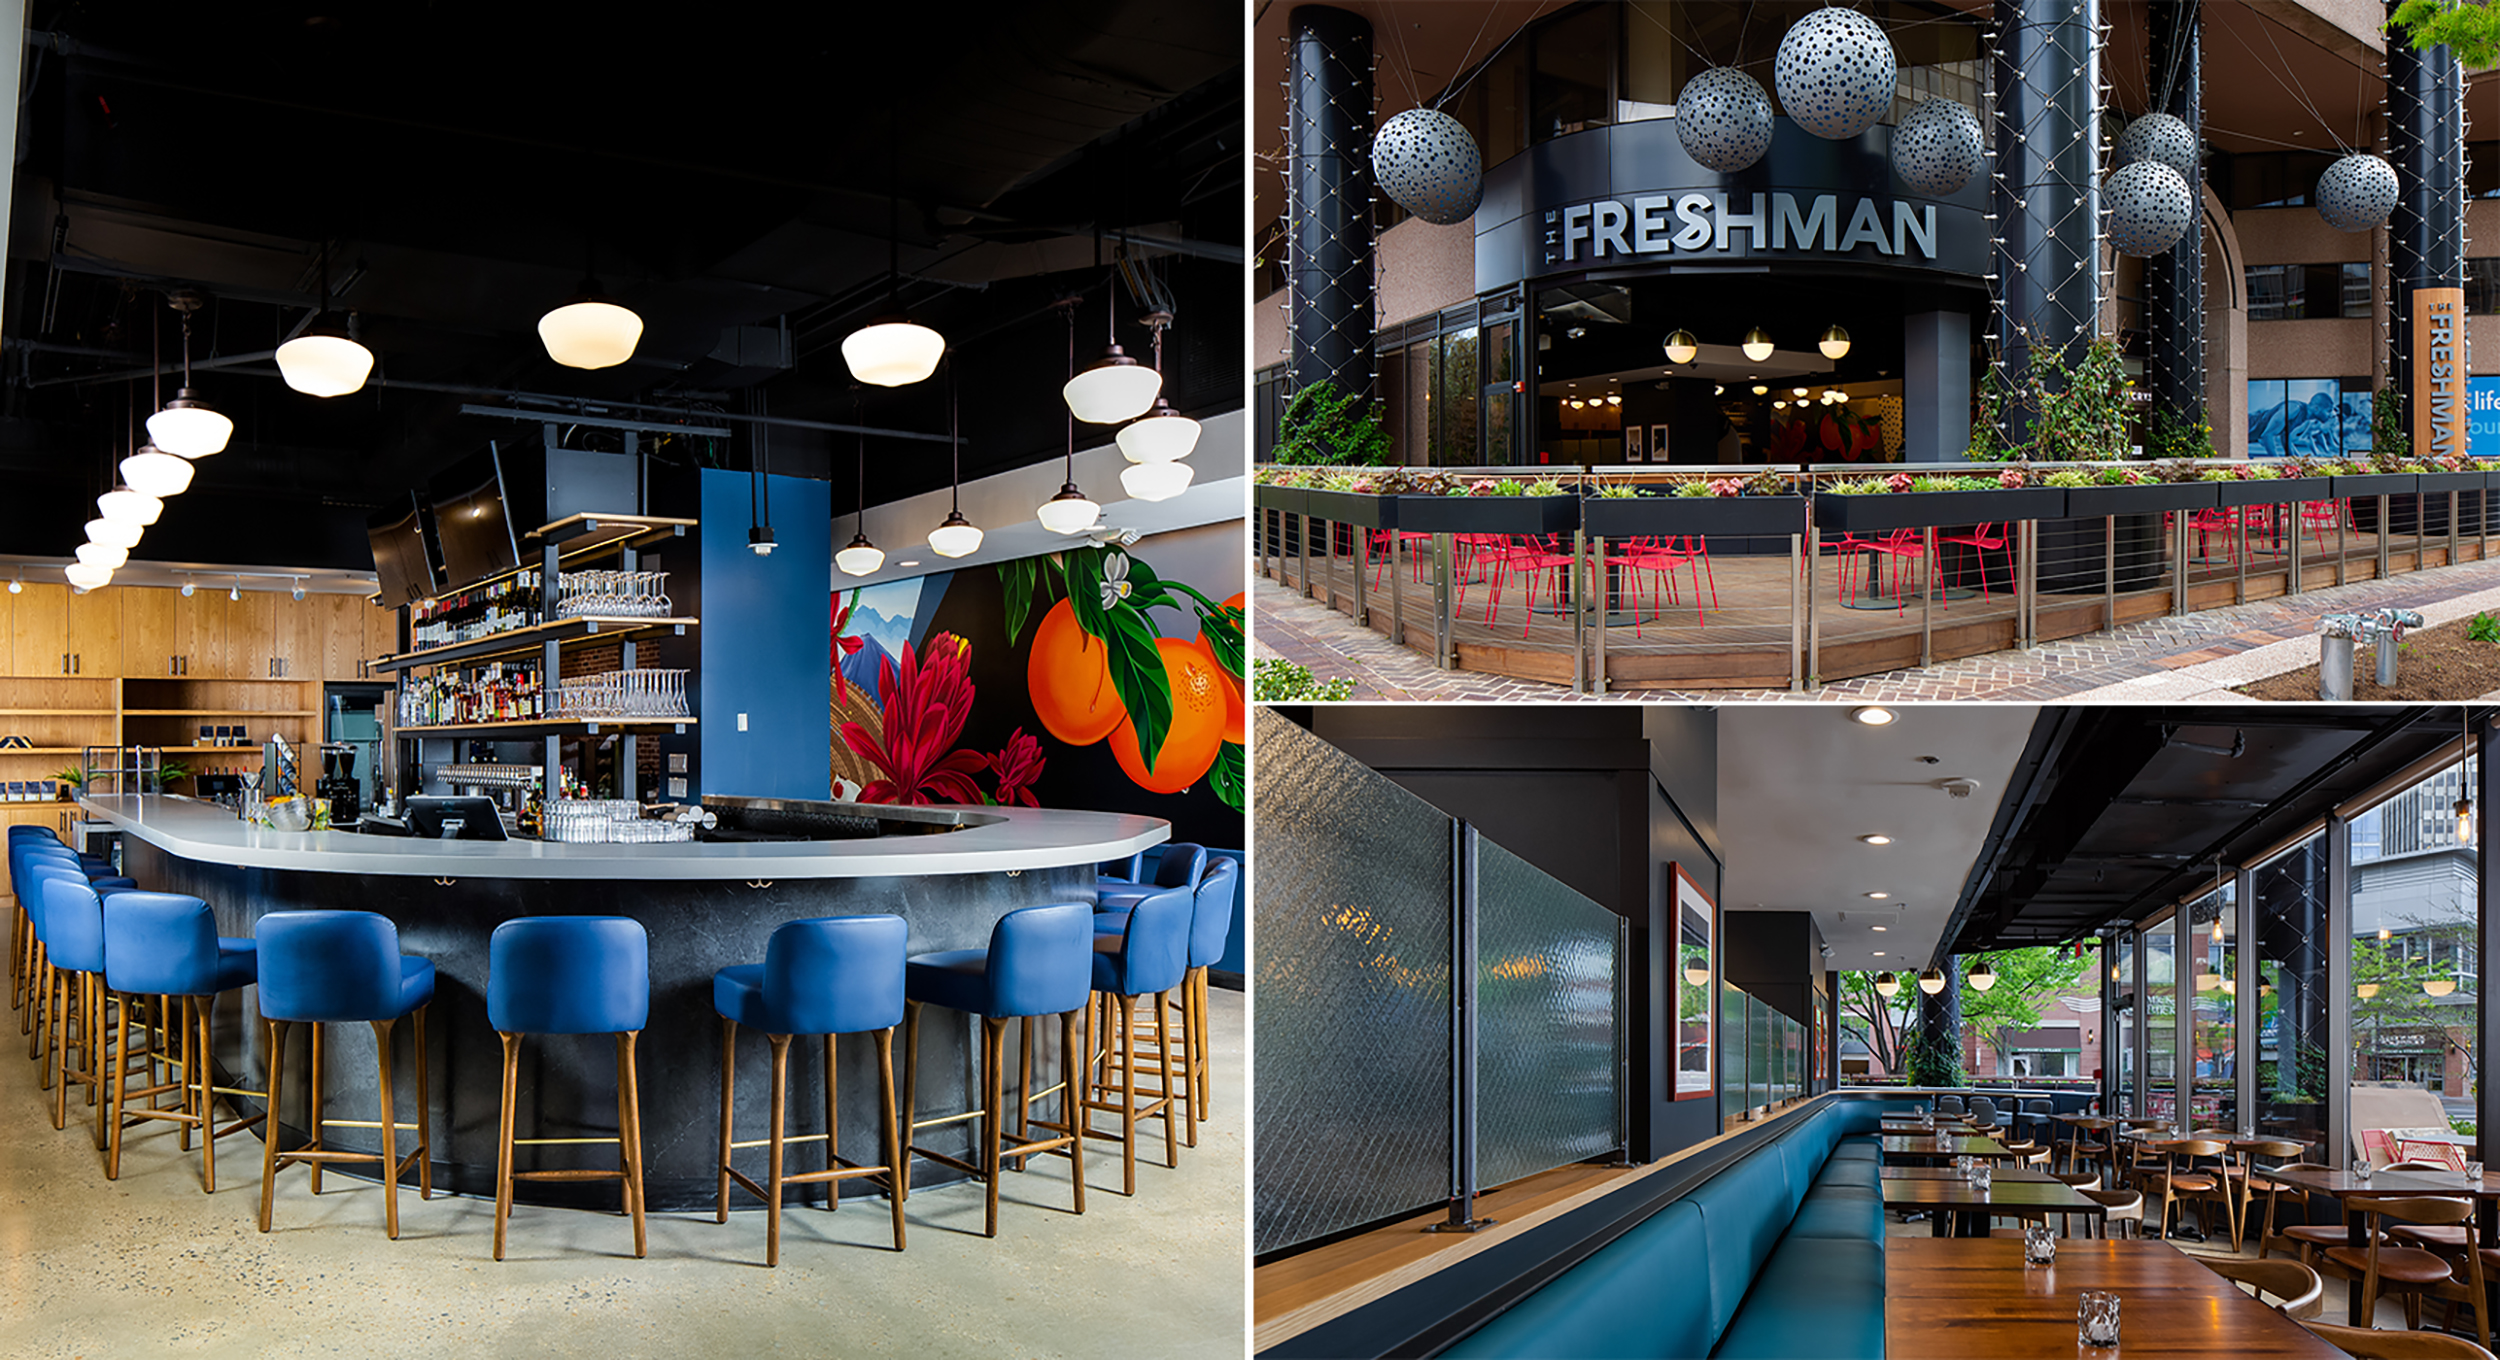 The Freshman uses materials along with specific circulation paths to transform from a morning coffee stop to an evening dining destination. 📷: Joseph Tran, Washington, D.C.